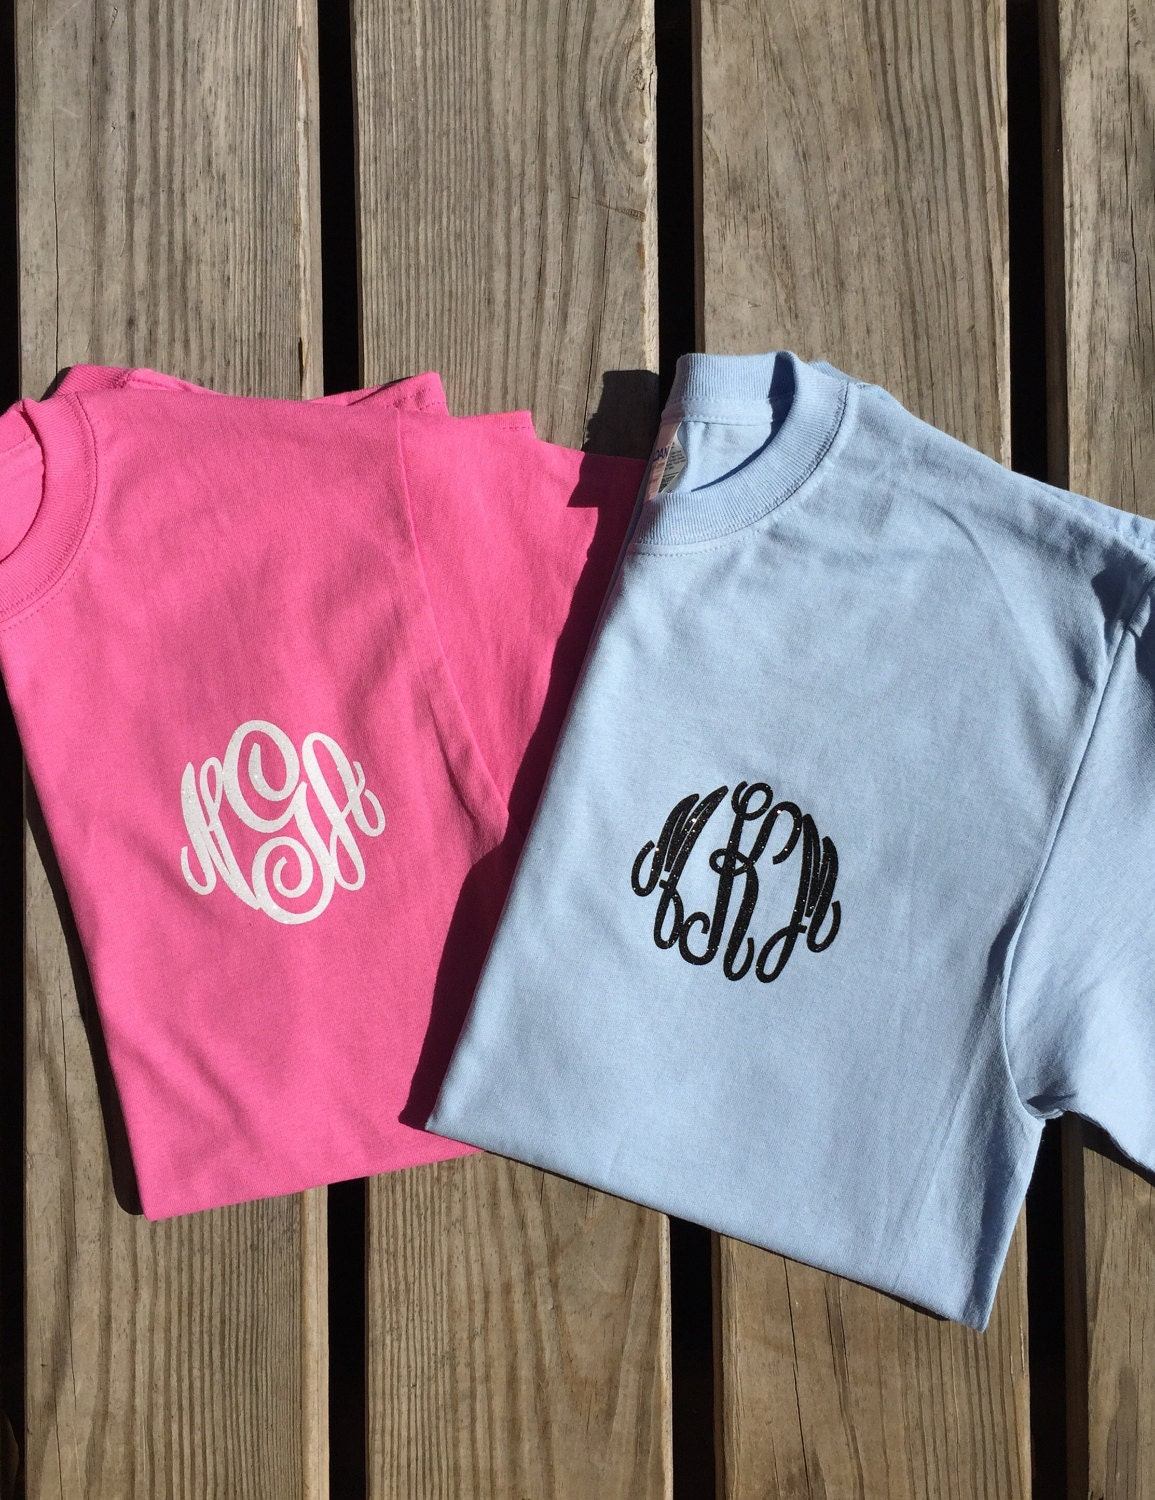 Monogram t shirt monogrammed shirt monogrammed gift for Embroidery placement on t shirts